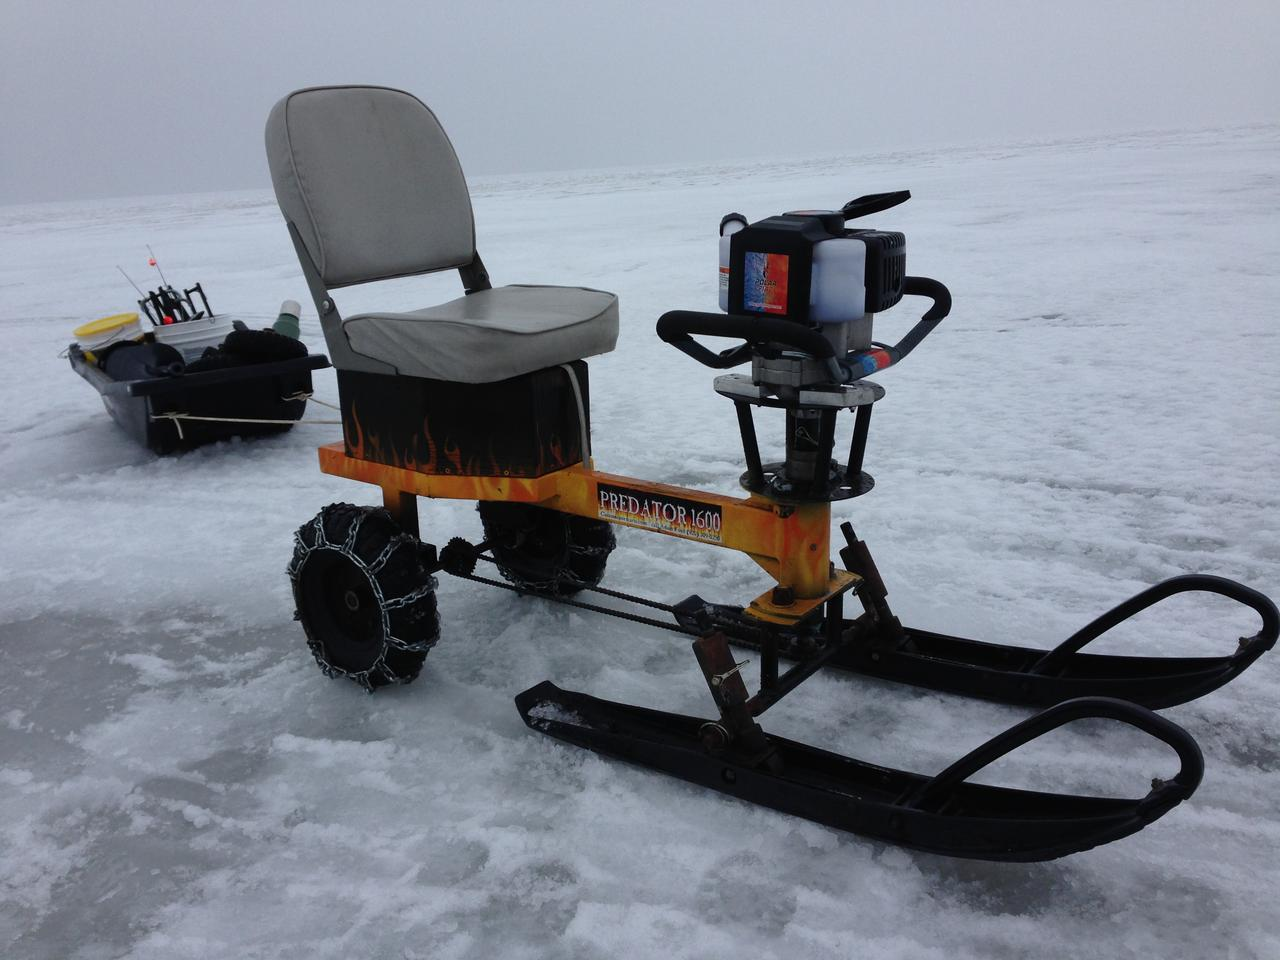 The Ice Auger Machine, set up with snowmobile skis